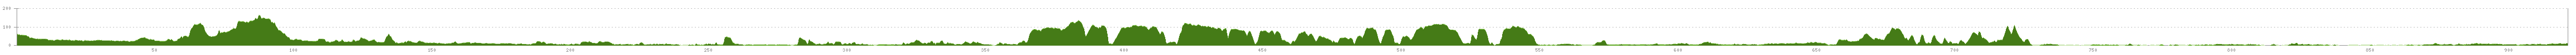 Elevation profile Cycle Tour Paris - Aachen